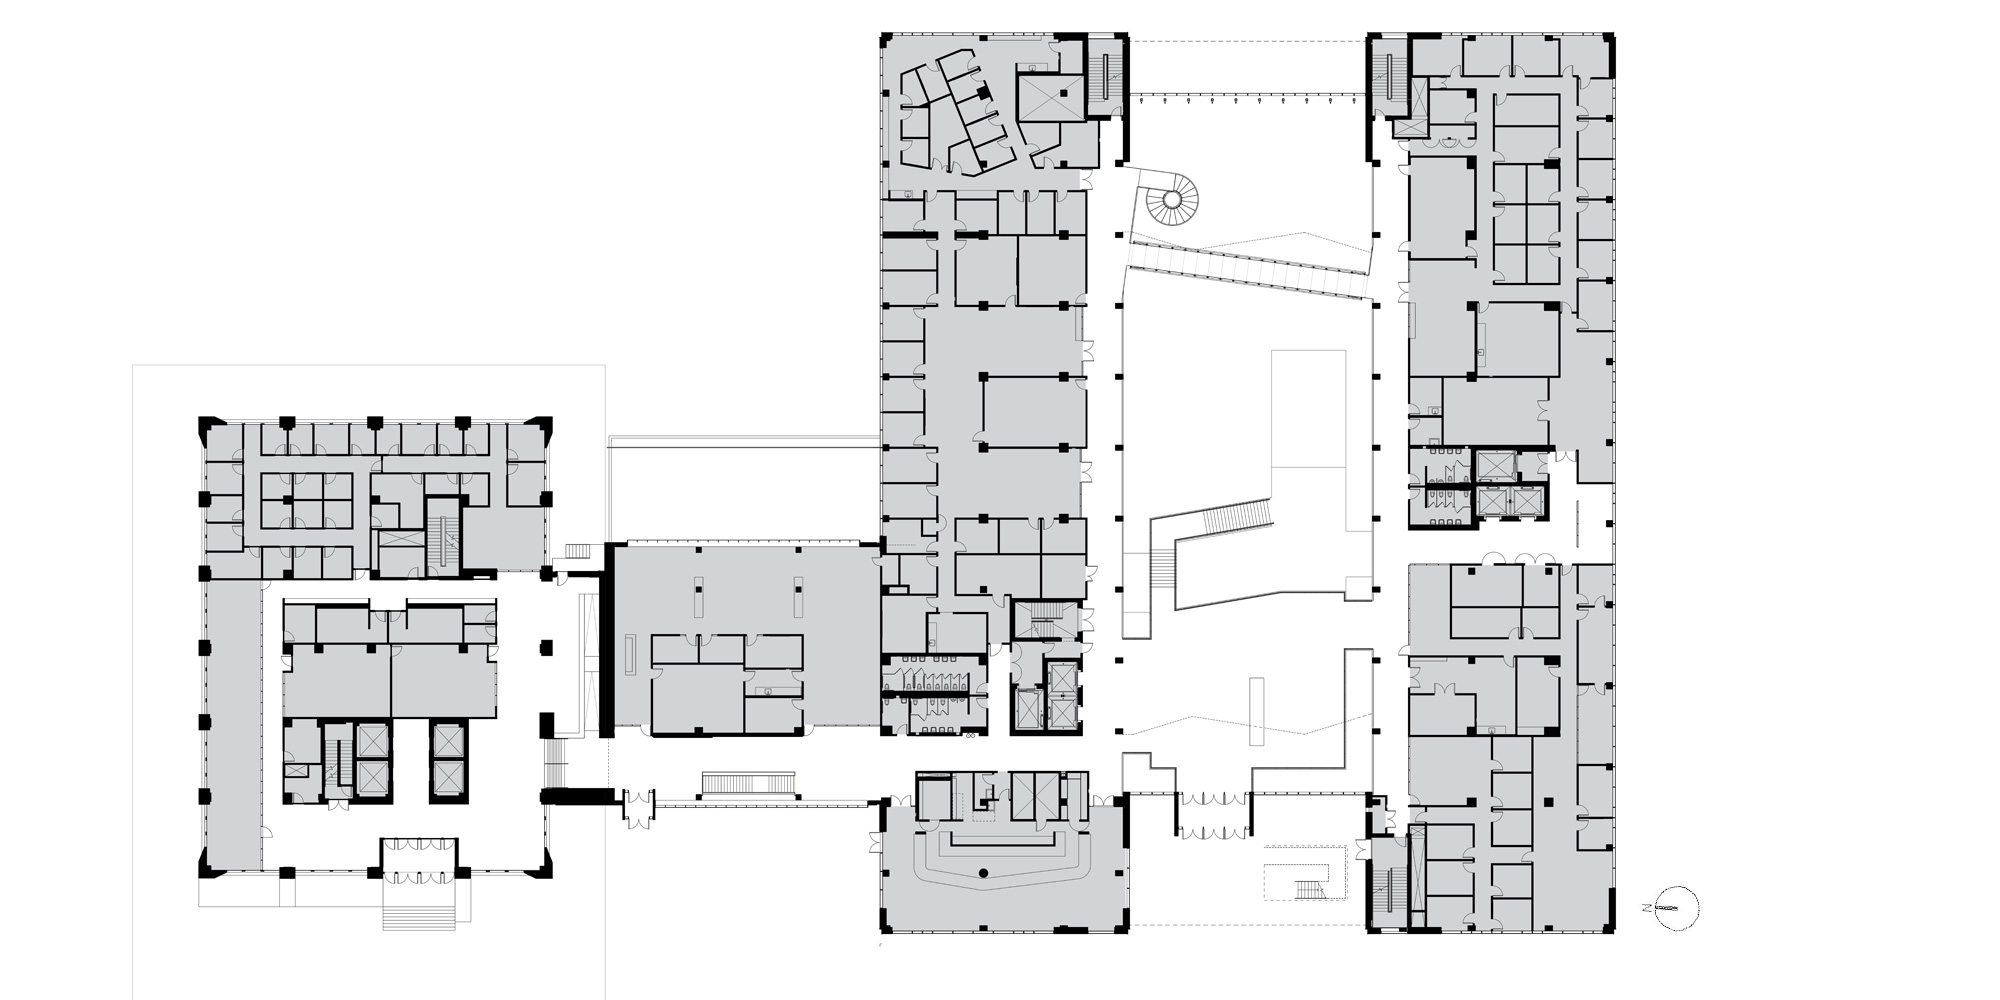 Level 2 plan © Ennead Architects